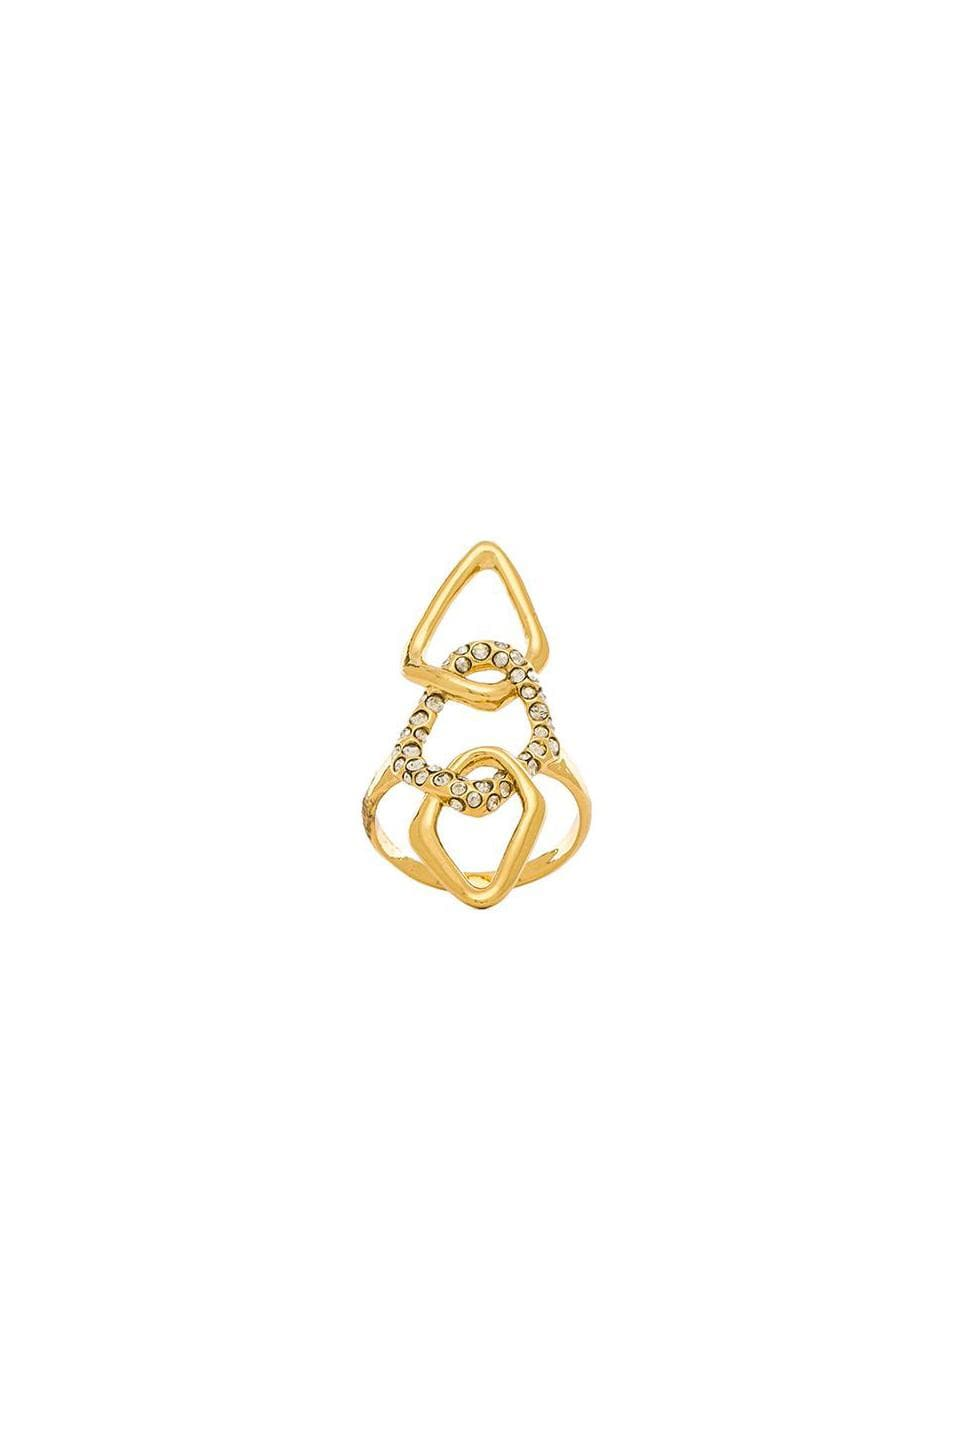 Alexis Bittar Encrusted Link Ring in Gold